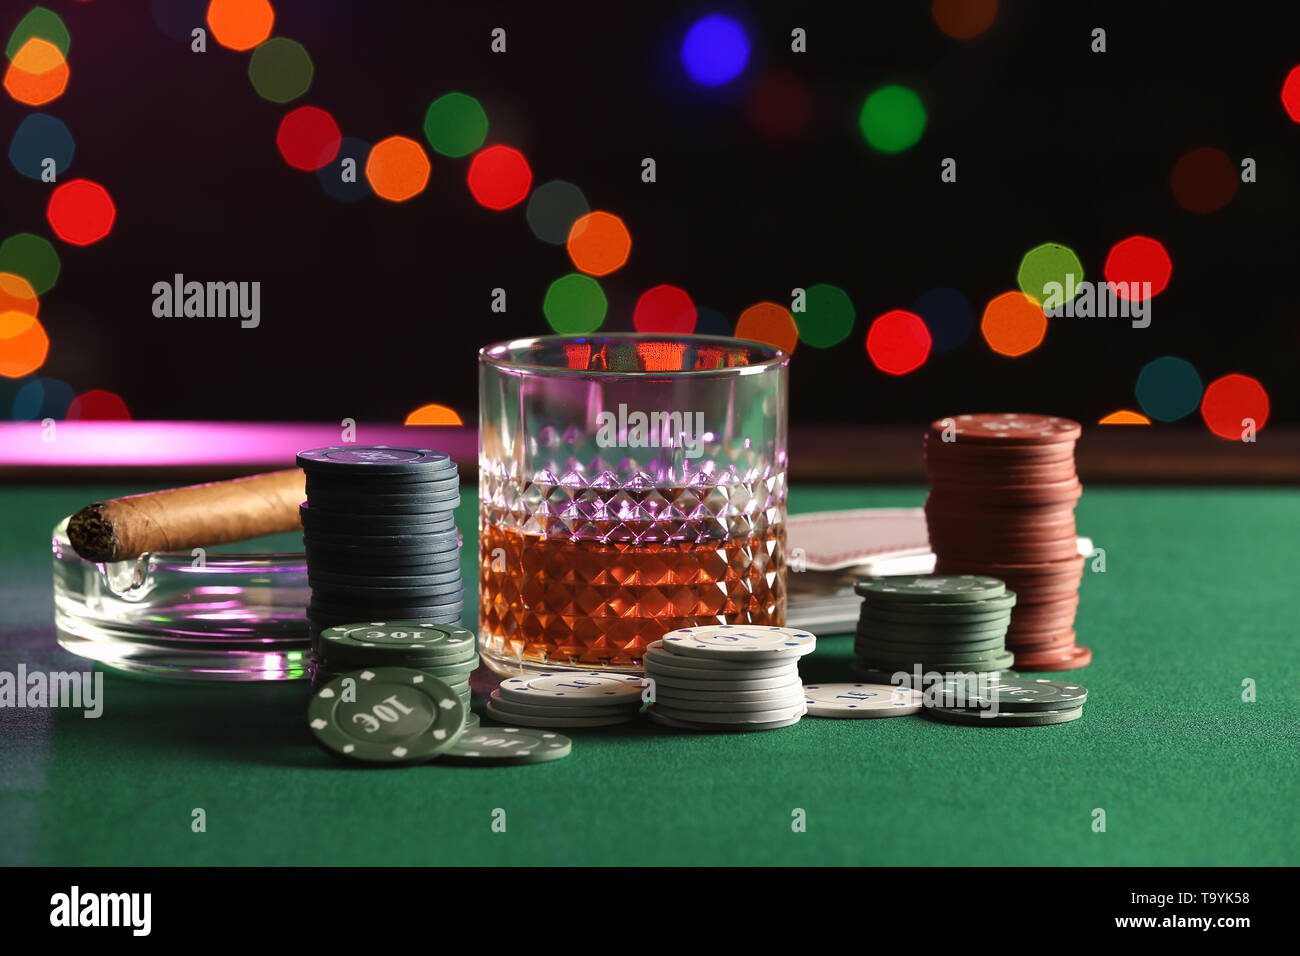 Chips, glass of whiskey and cigar on table in casino - Stock Image